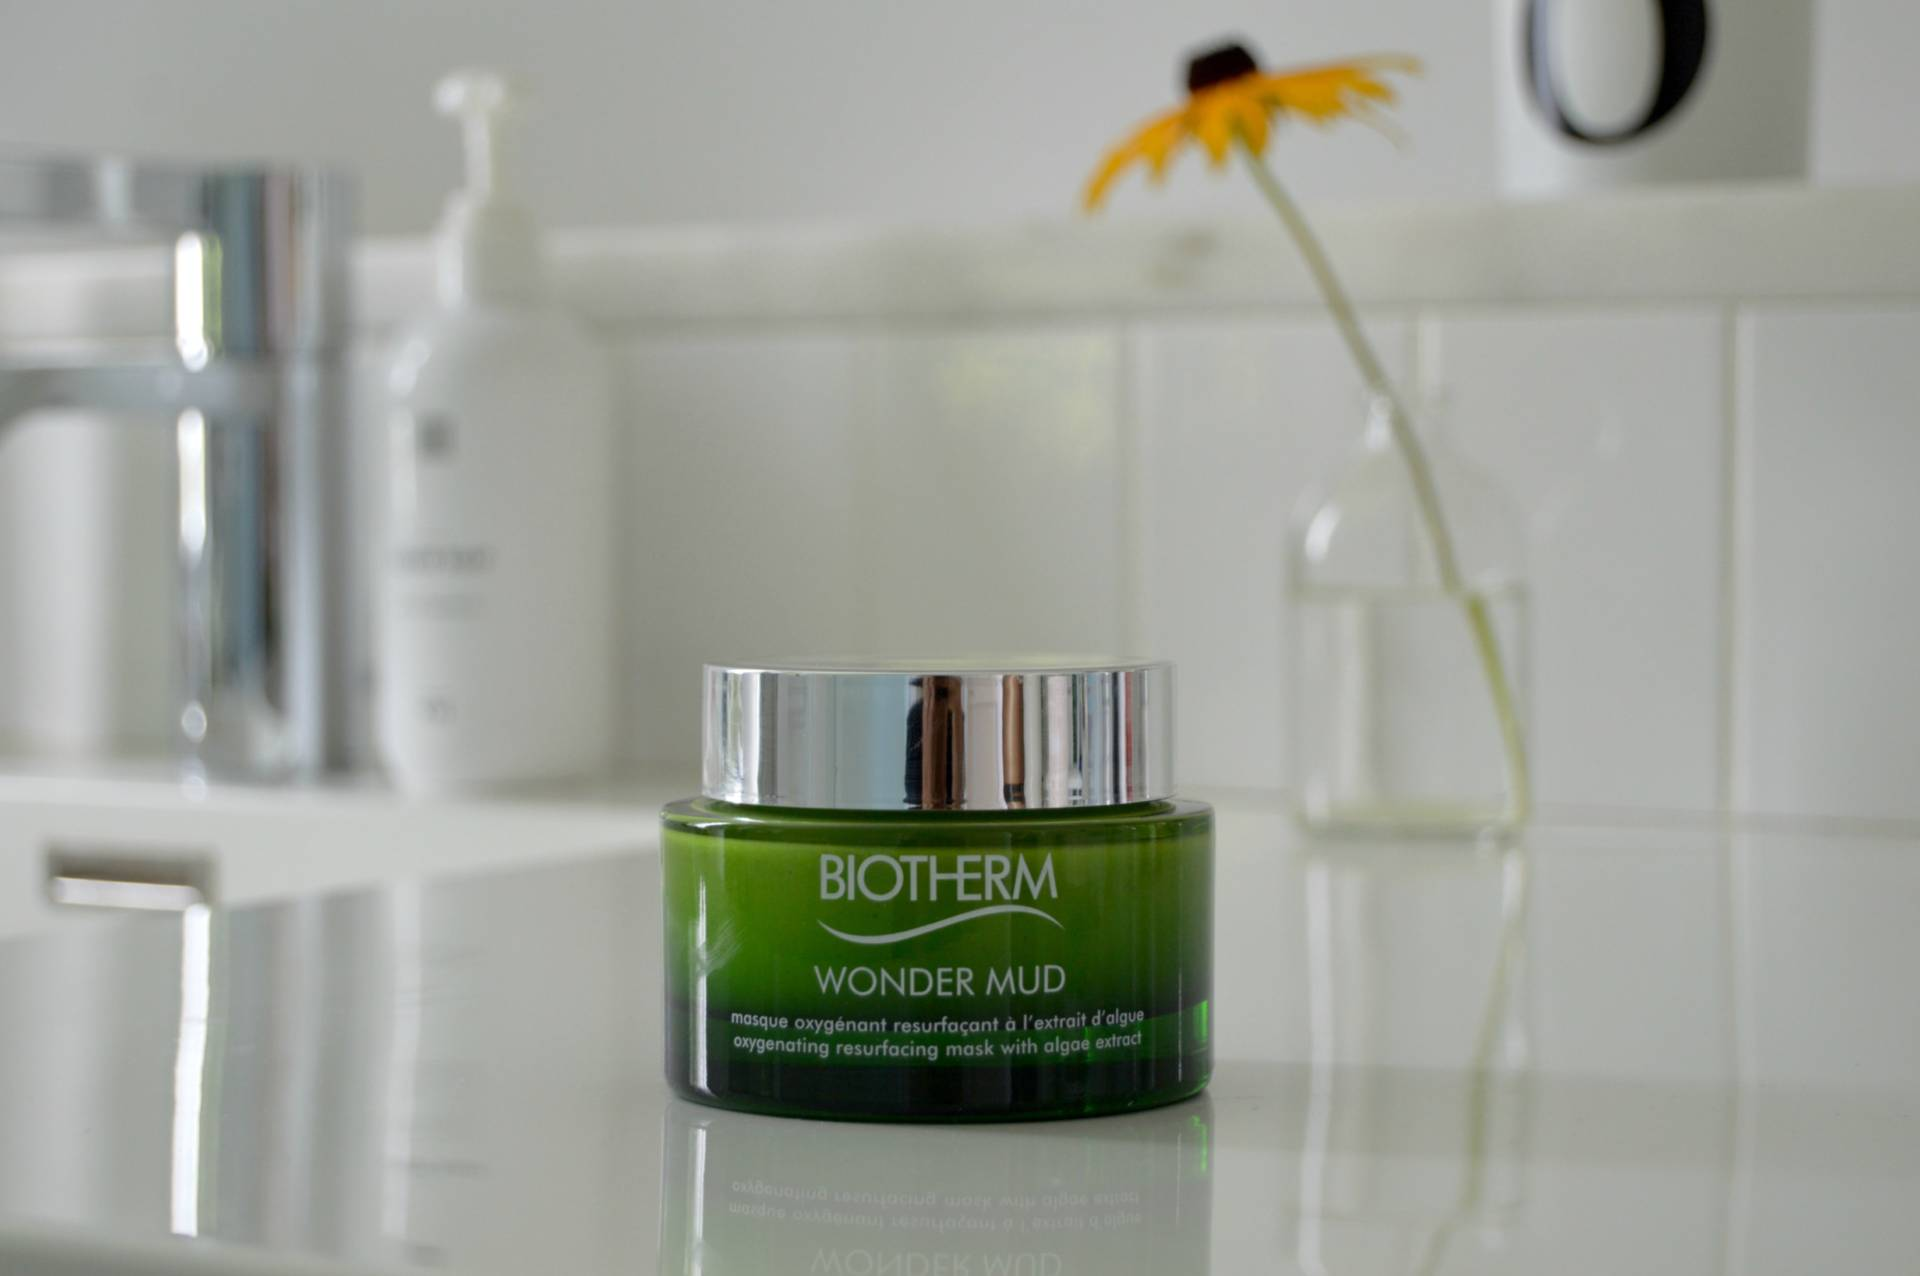 biotherm wonder mud mask review inhautepursuit